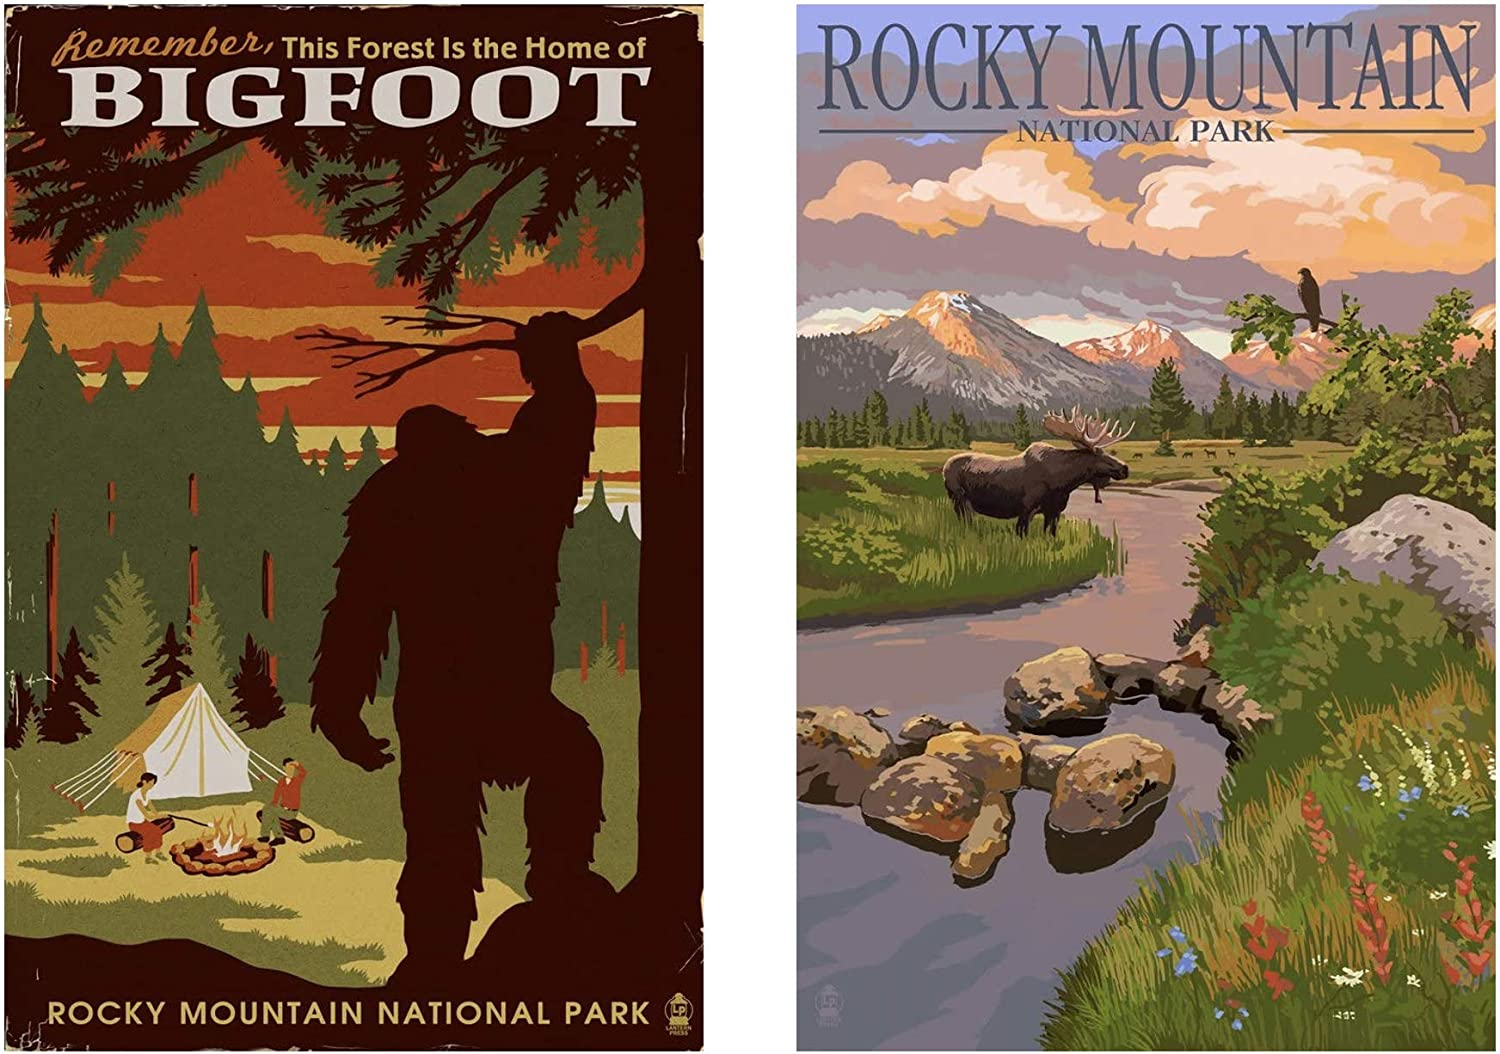 Rocky Mountain National Park Poster Bundle - Home of Bigfoot, Moose and Meadow (Two 9x12 Art Print, Wall Decor Travel Posters)